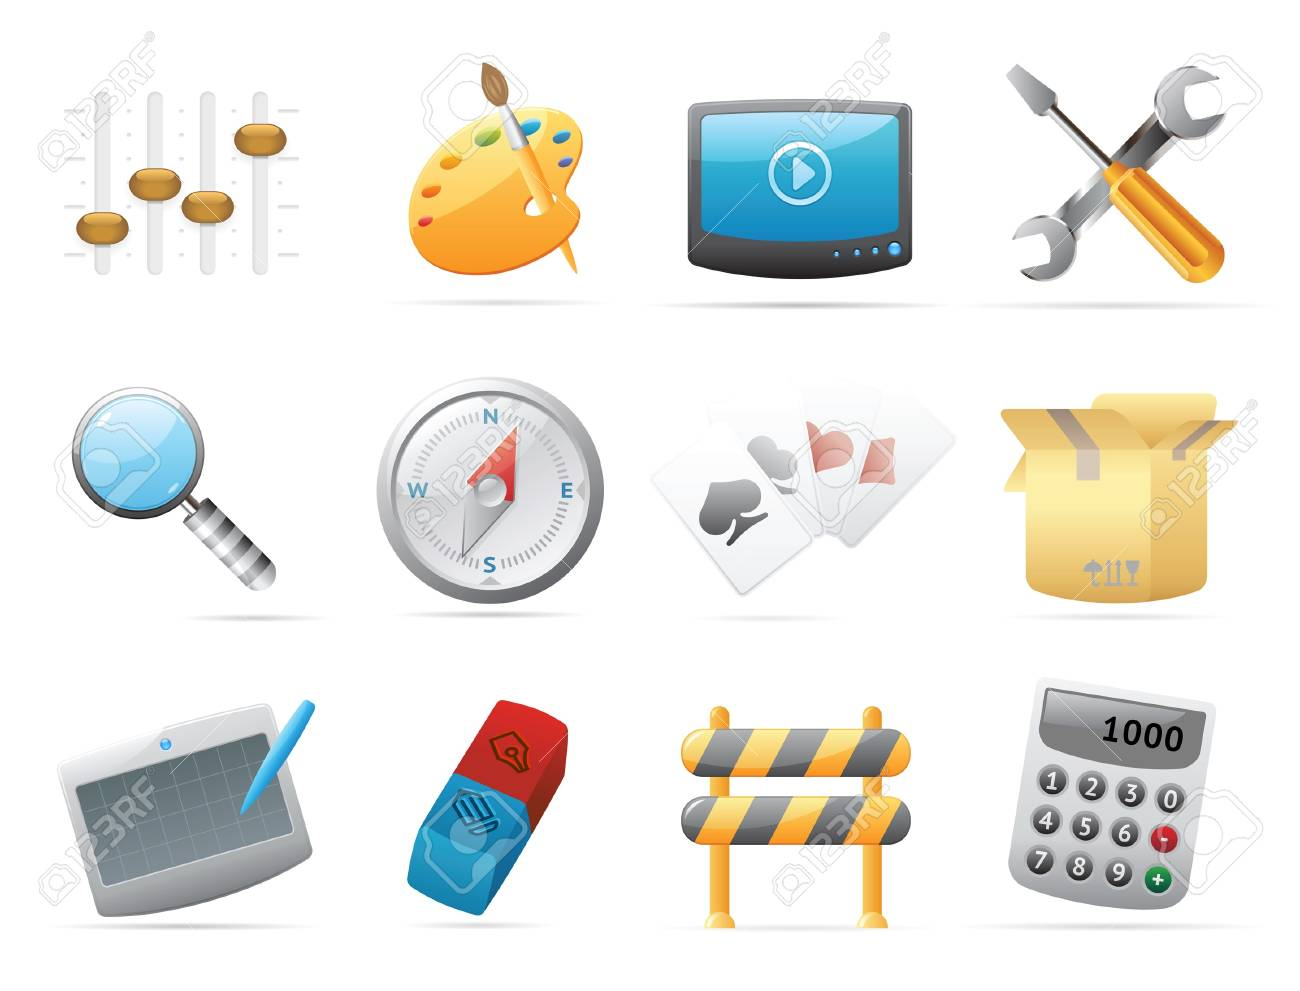 Icons for computer and website interface. Vector illustration. Stock Vector - 10893056